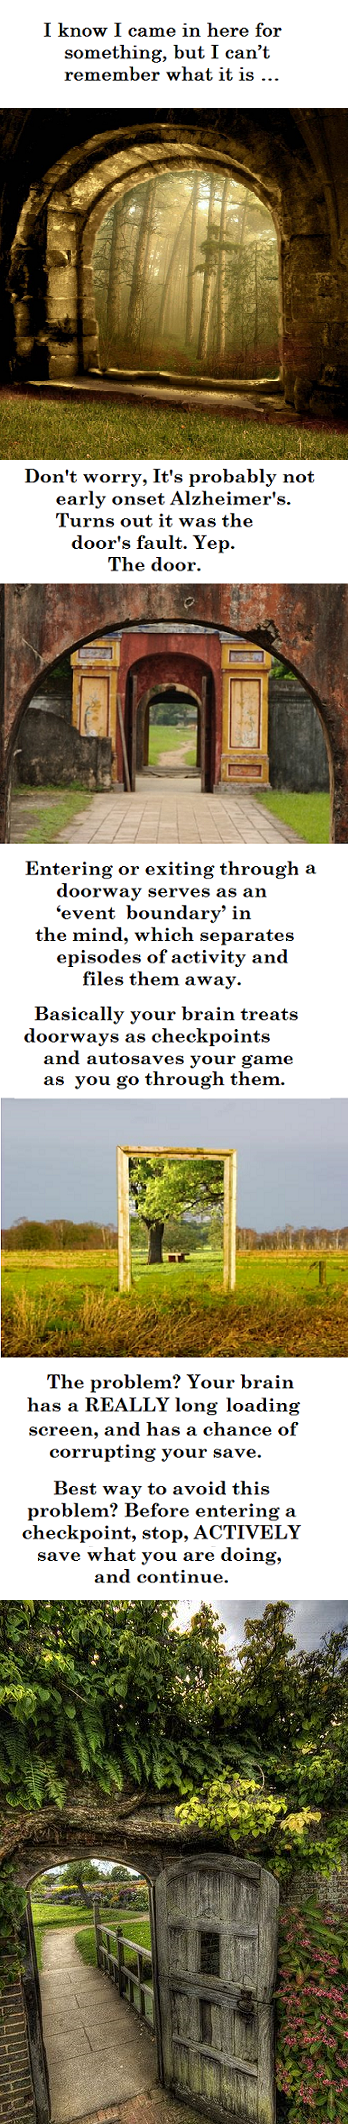 Why did I come in here again?. Im a Psych major and I love cool Brain Stuff like this. Trying to earn a voice with some OC =).. Am I able to reload an autosave from like 10 years ago?